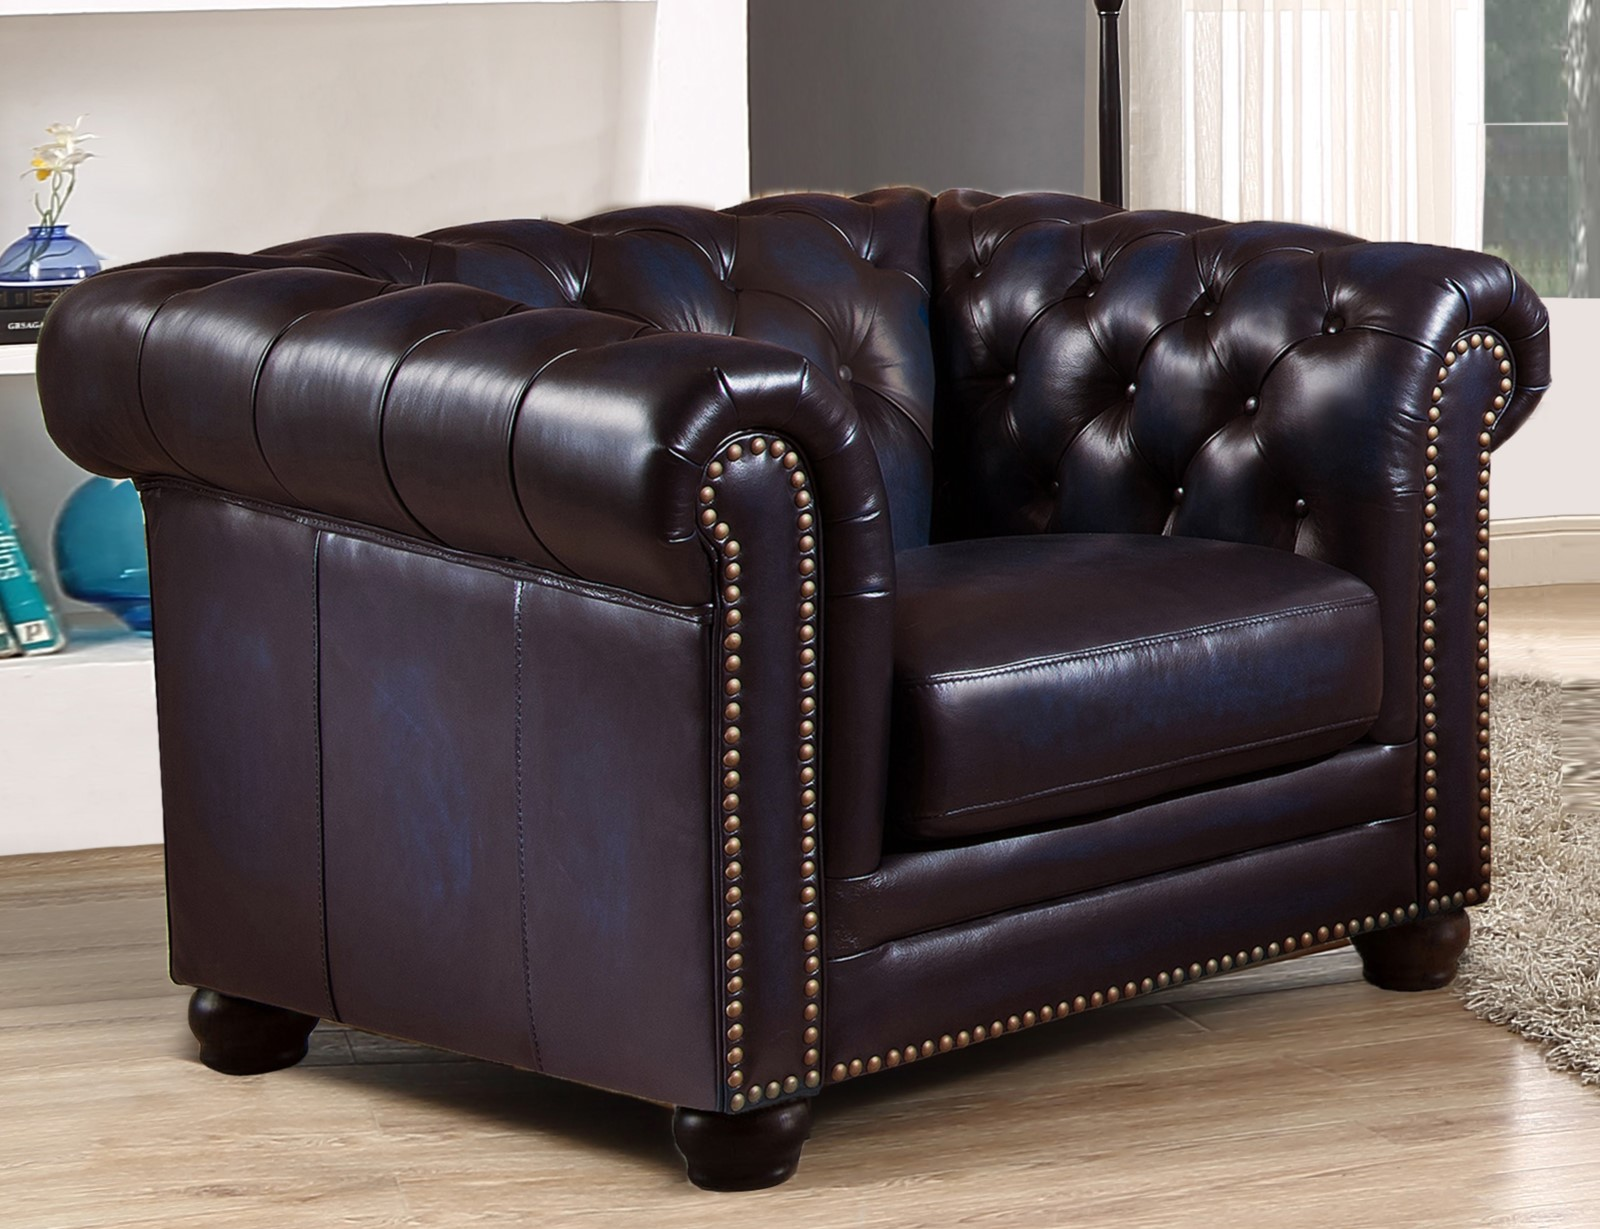 Dynasty 100% Genuine Leather Chesterfield Sofa & Two ...